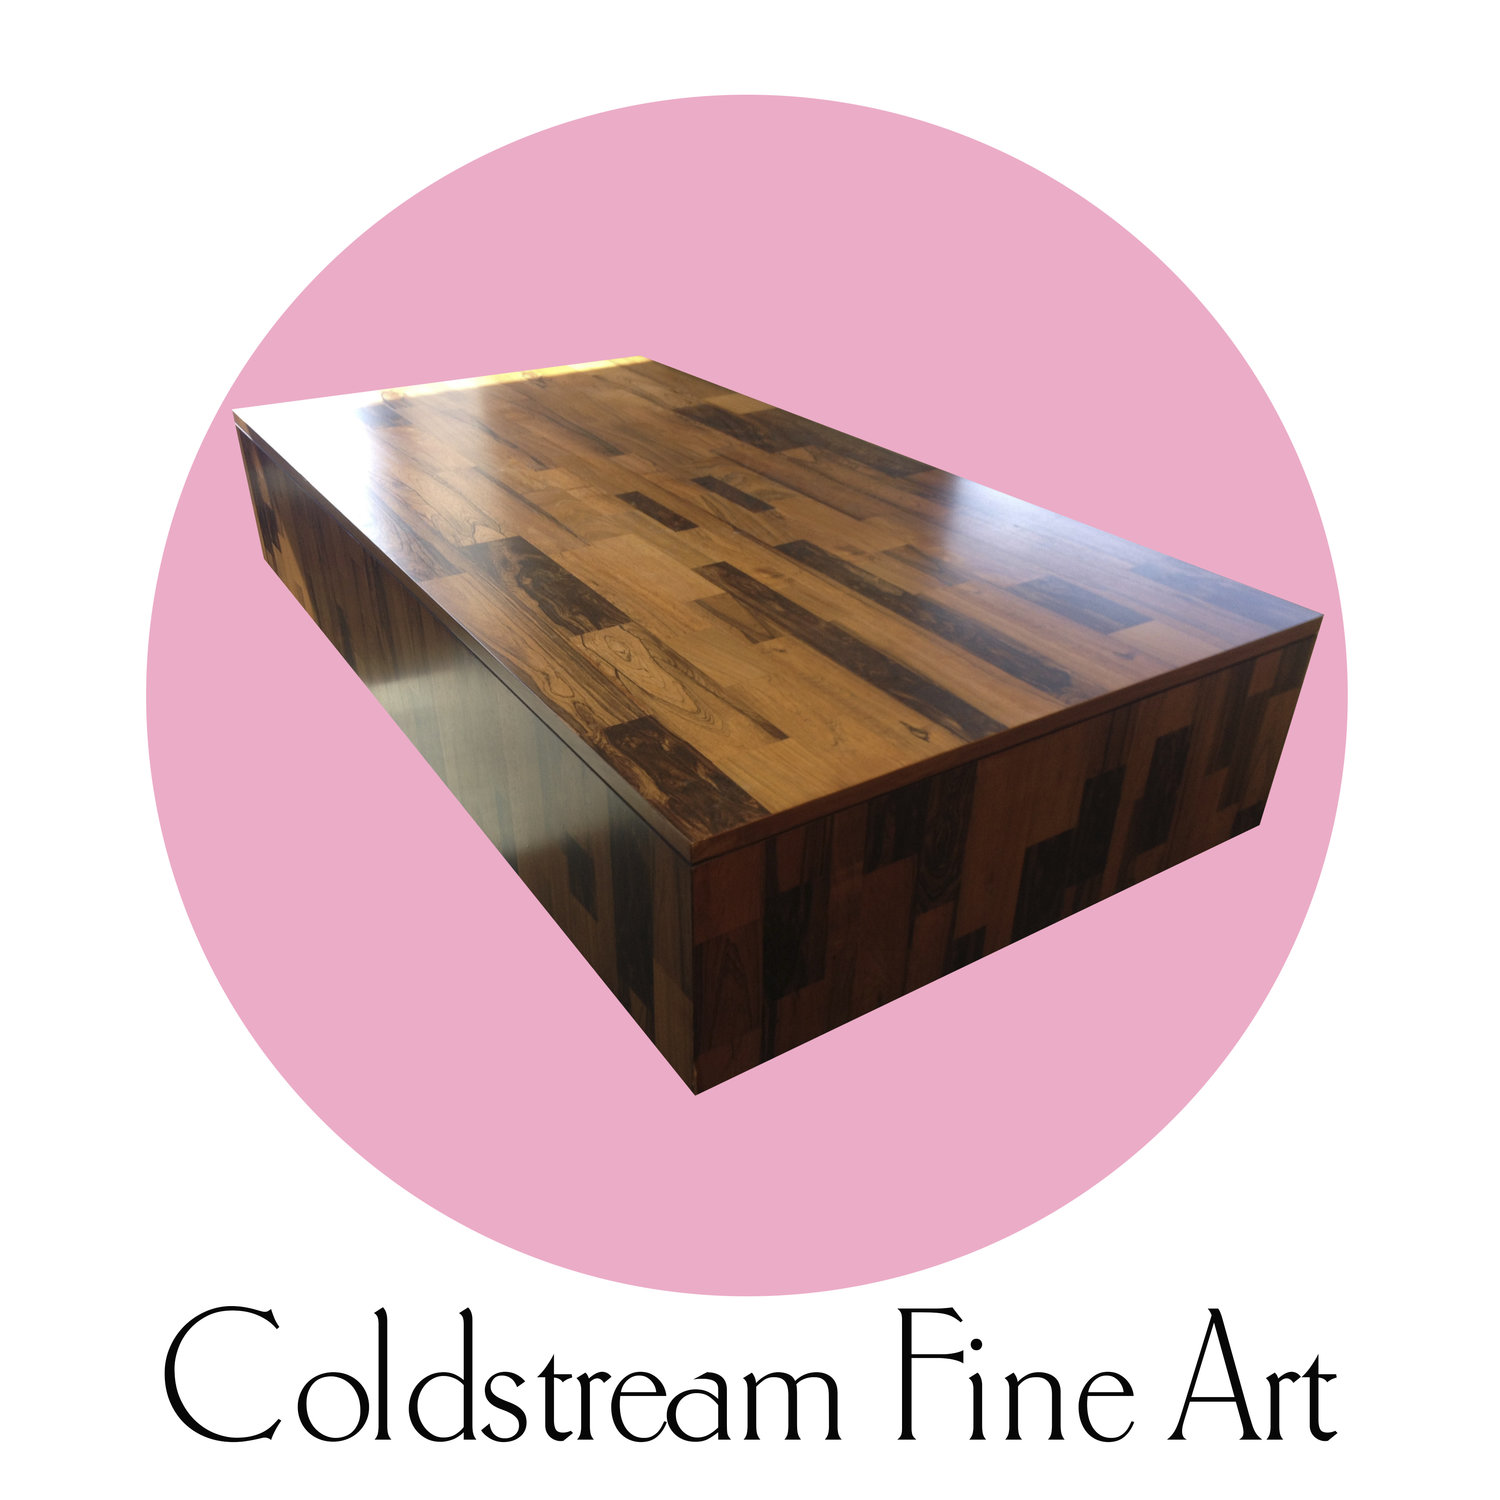 Coldstream Fine Art